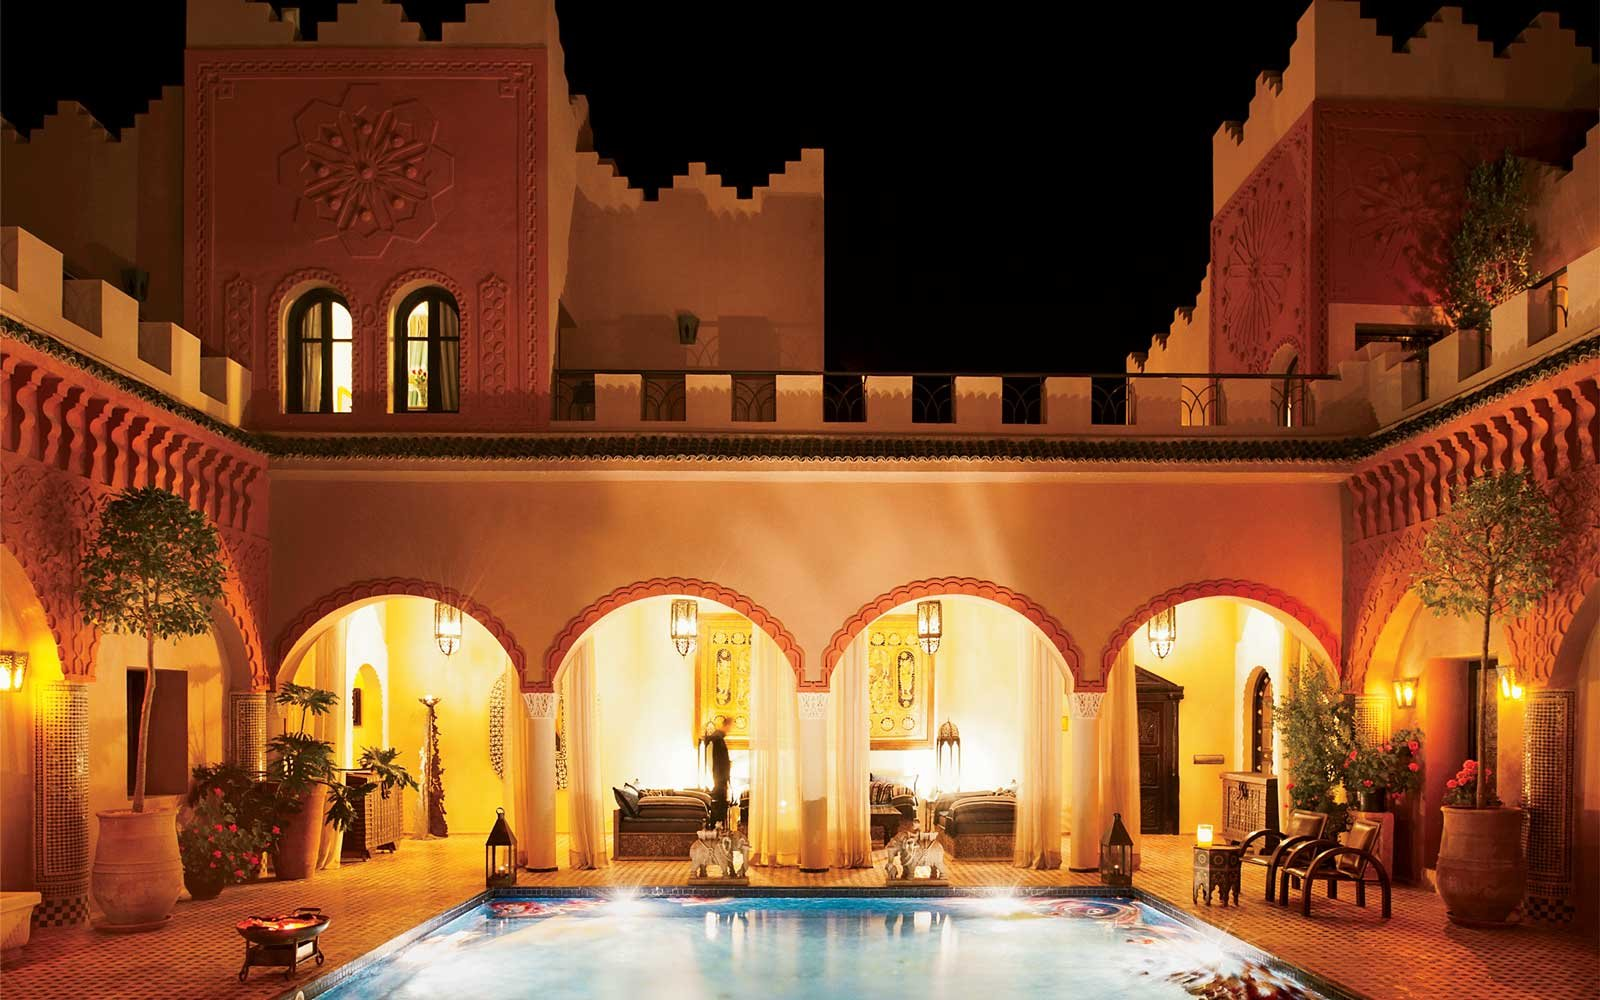 The pool at Kasbah Tamadot, in Marrakech, Morocco